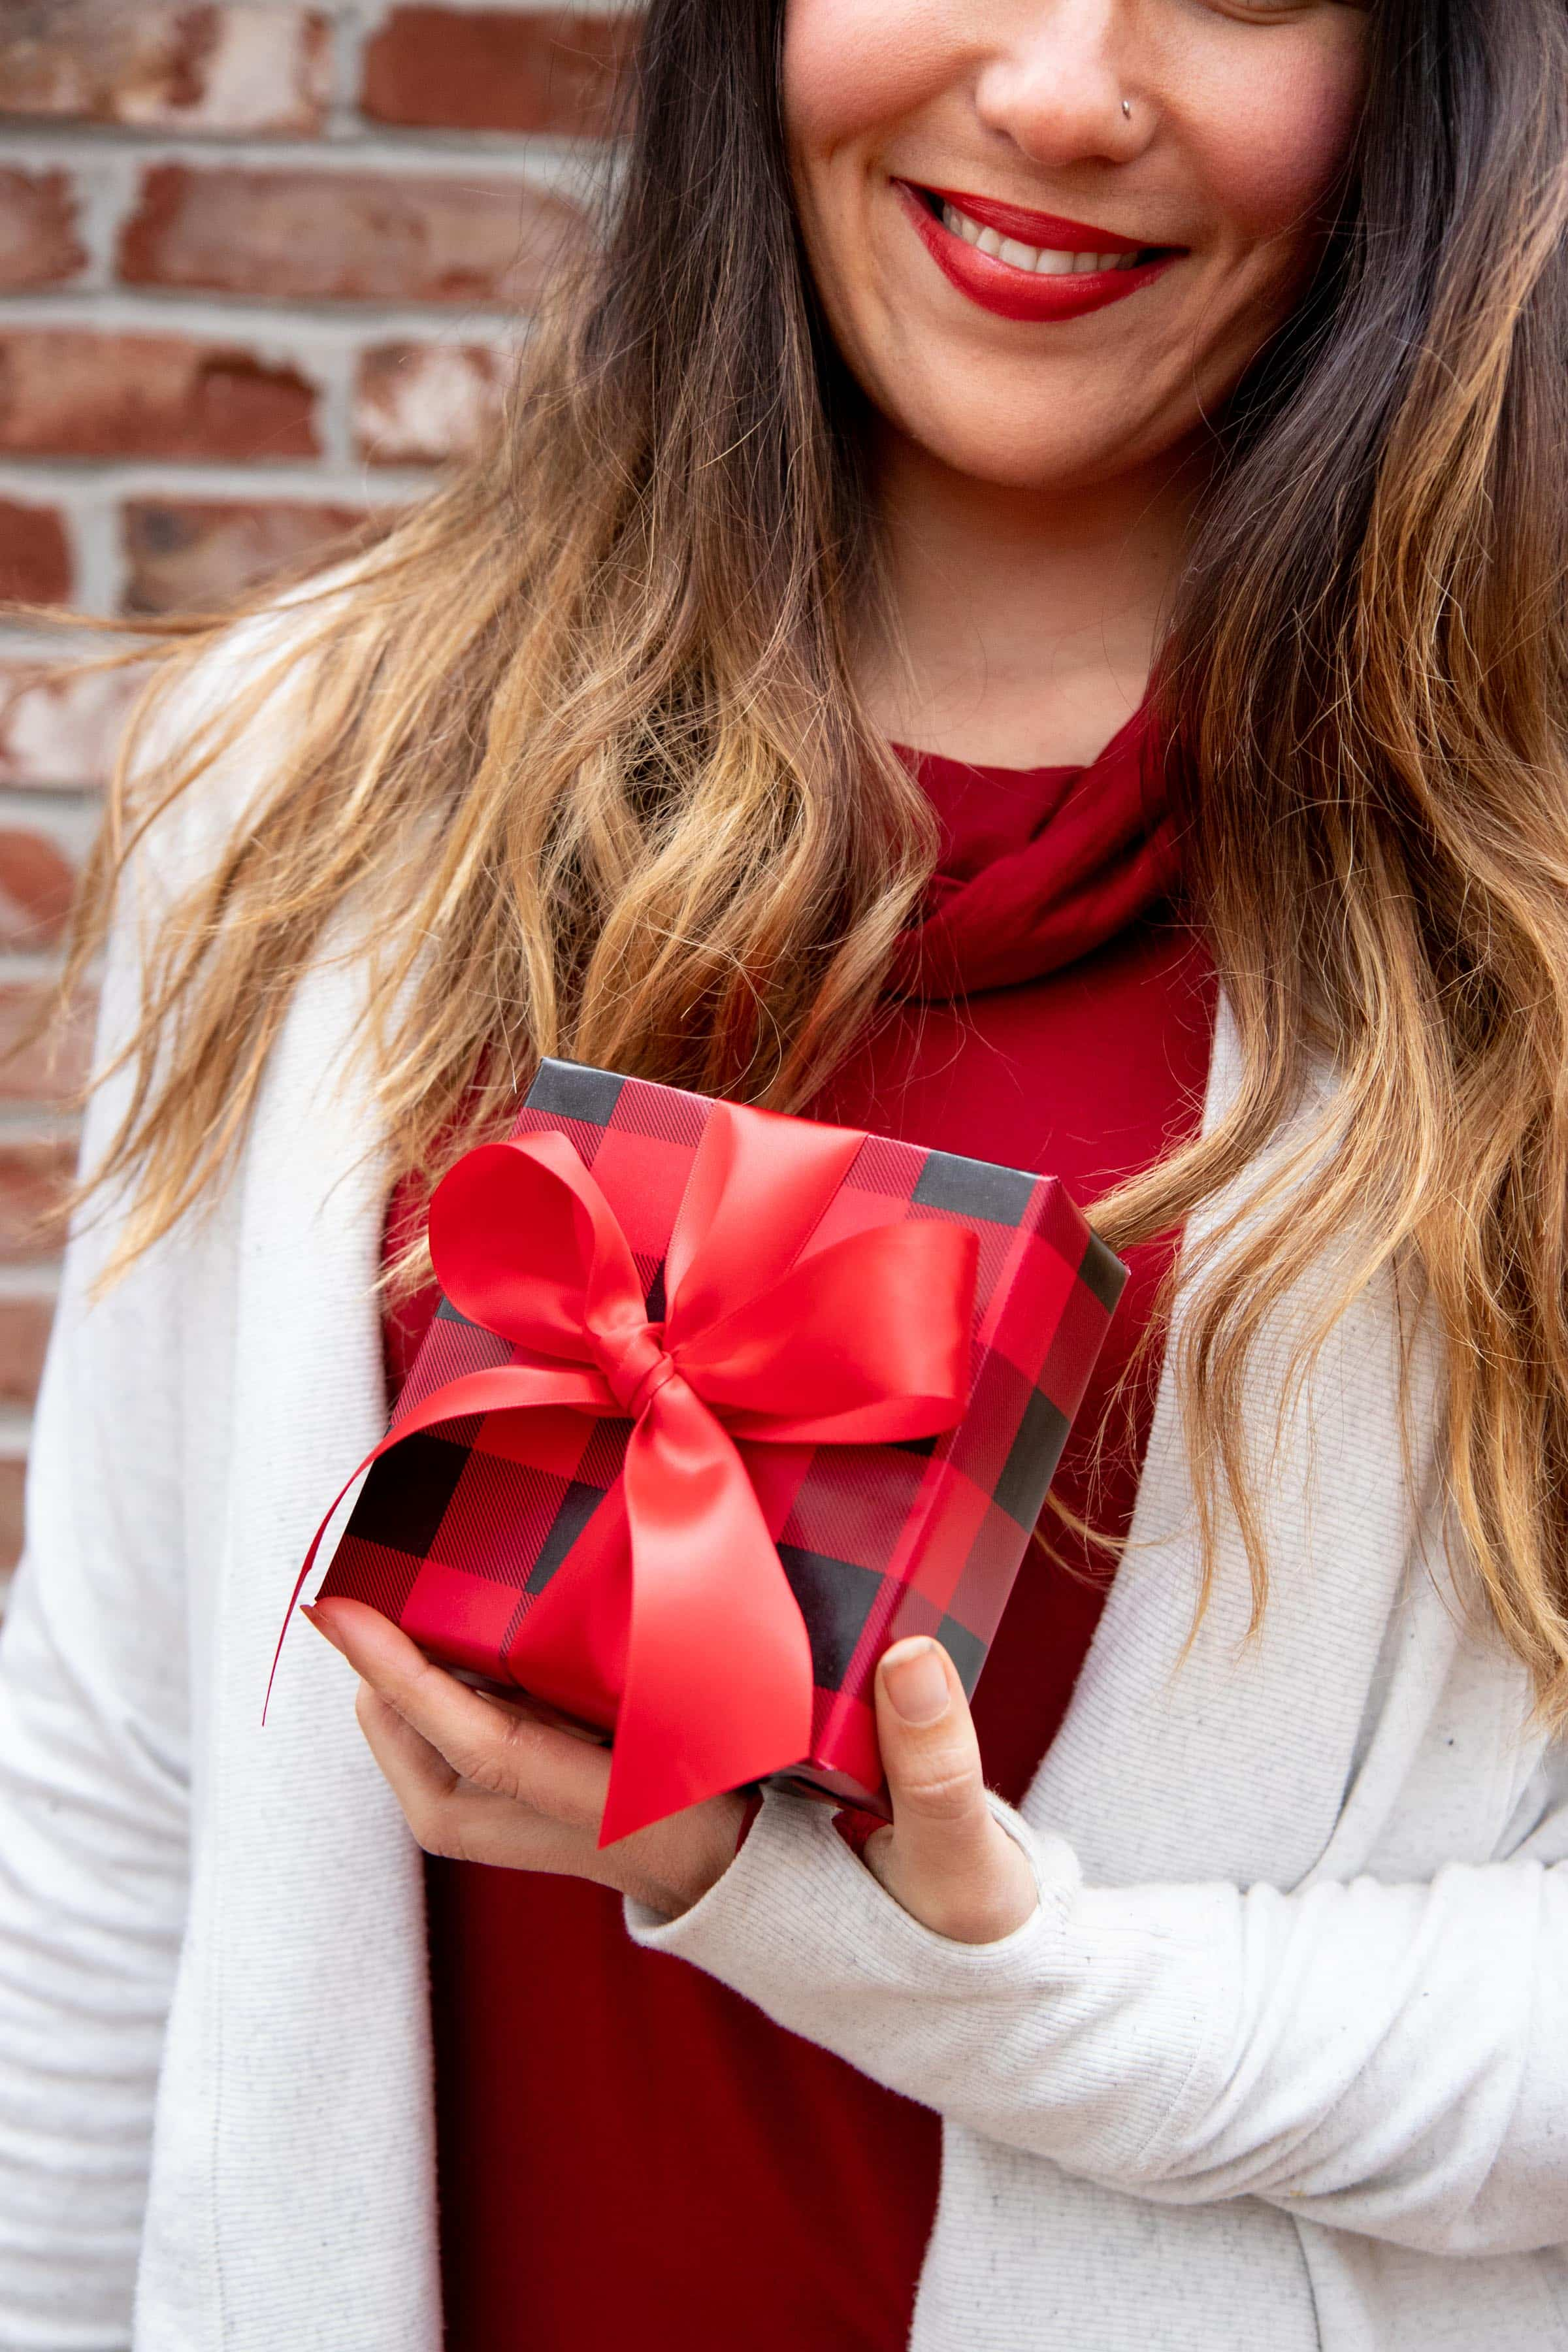 Close up of a smiling woman holding a red-wrapped gift